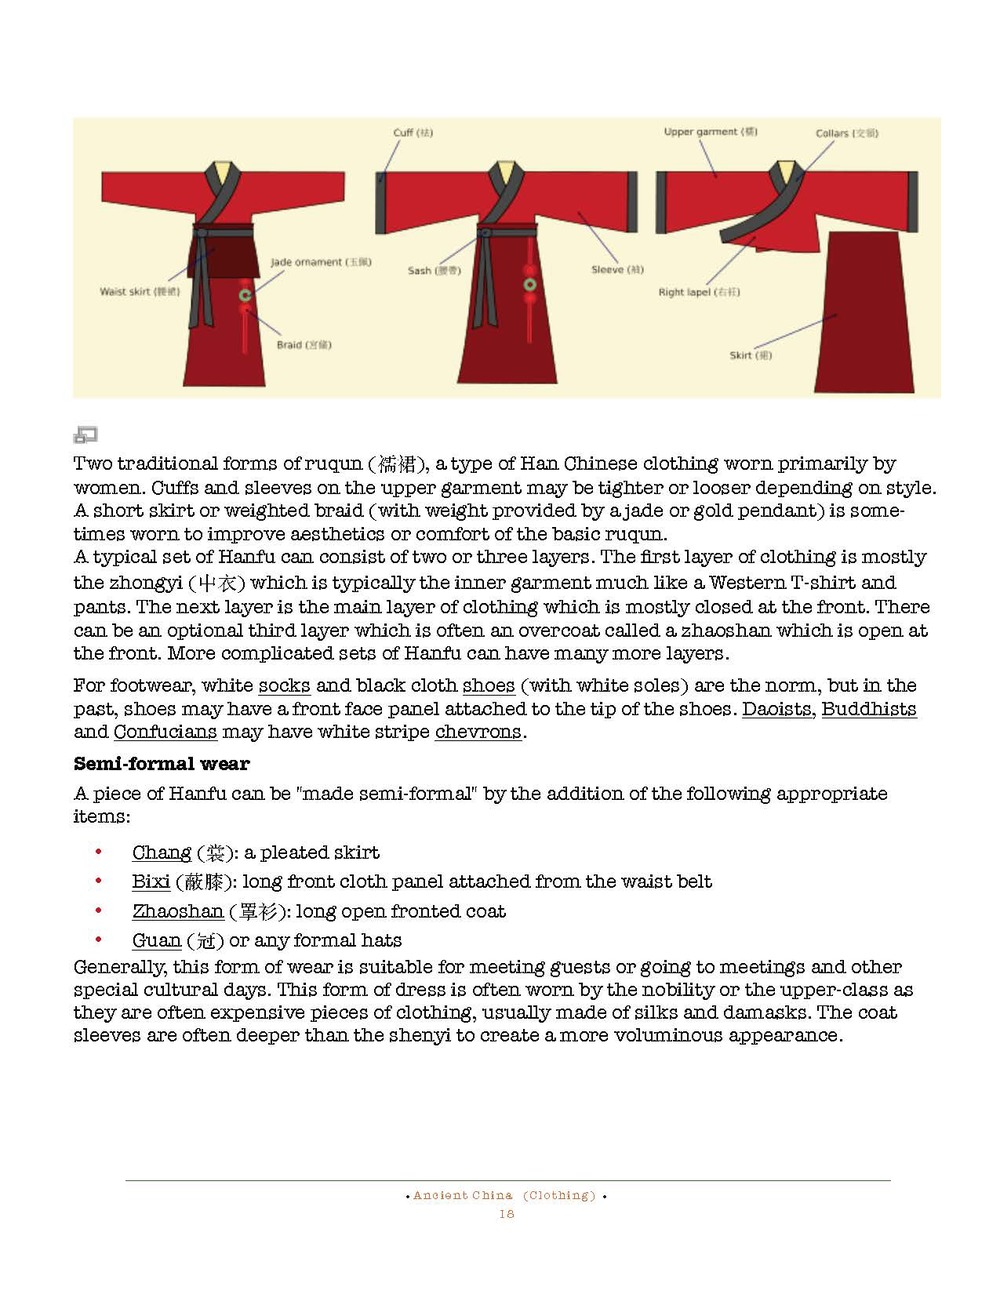 HOCE- Ancient China Notes (clothing)_Page_18.jpg